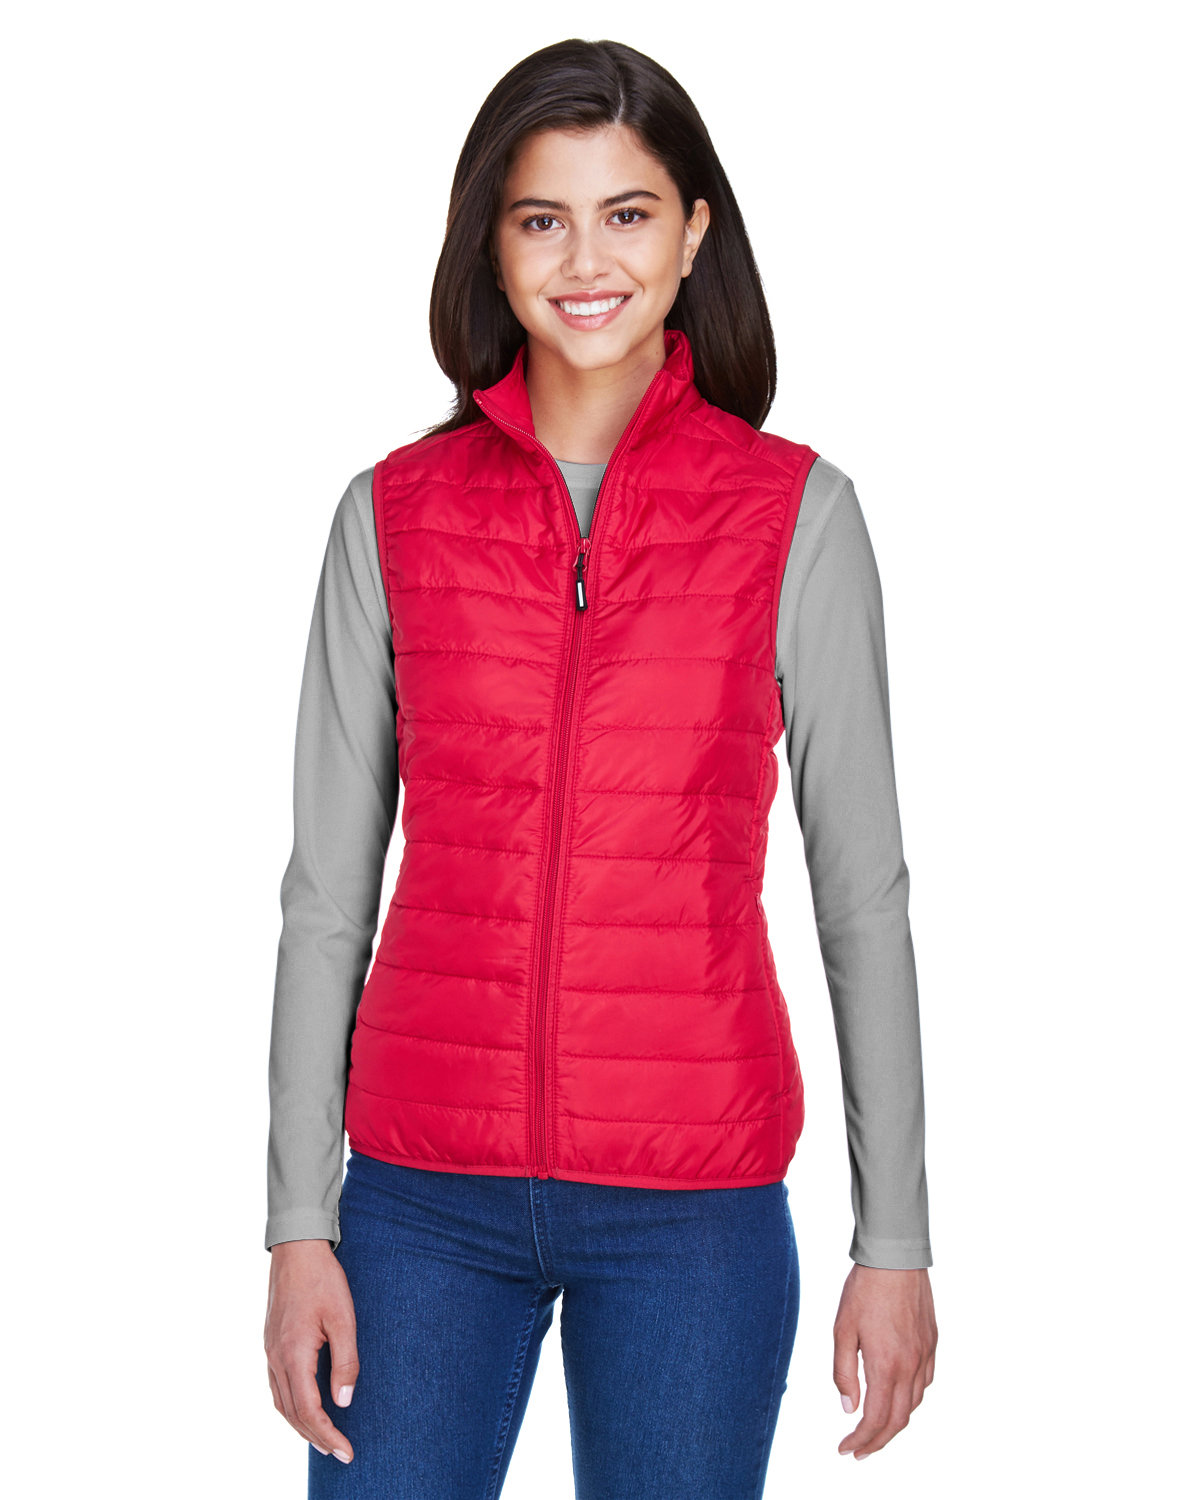 Core 365 Ladies' Prevail Packable Puffer Vest CLASSIC RED